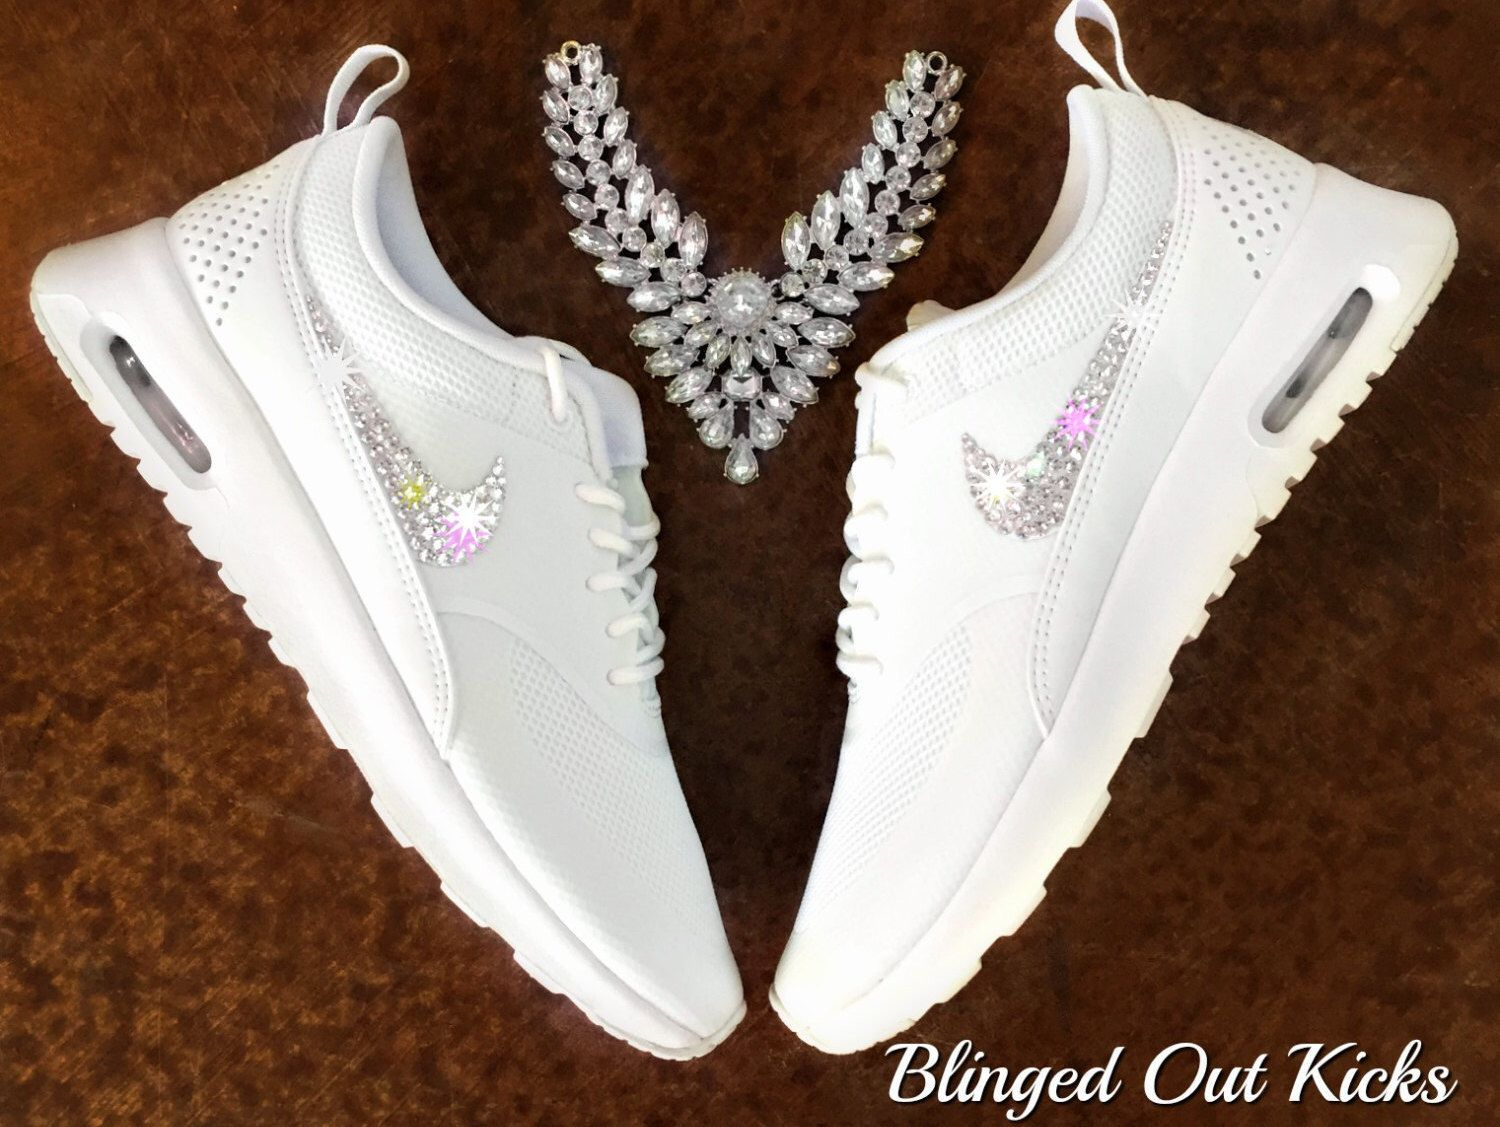 NIKE Air Max Thea frosted by Harriet & Hazel - Harriet & Hazel - 1 | My  Fashion | Pinterest | Air max thea, Air max and Monograms